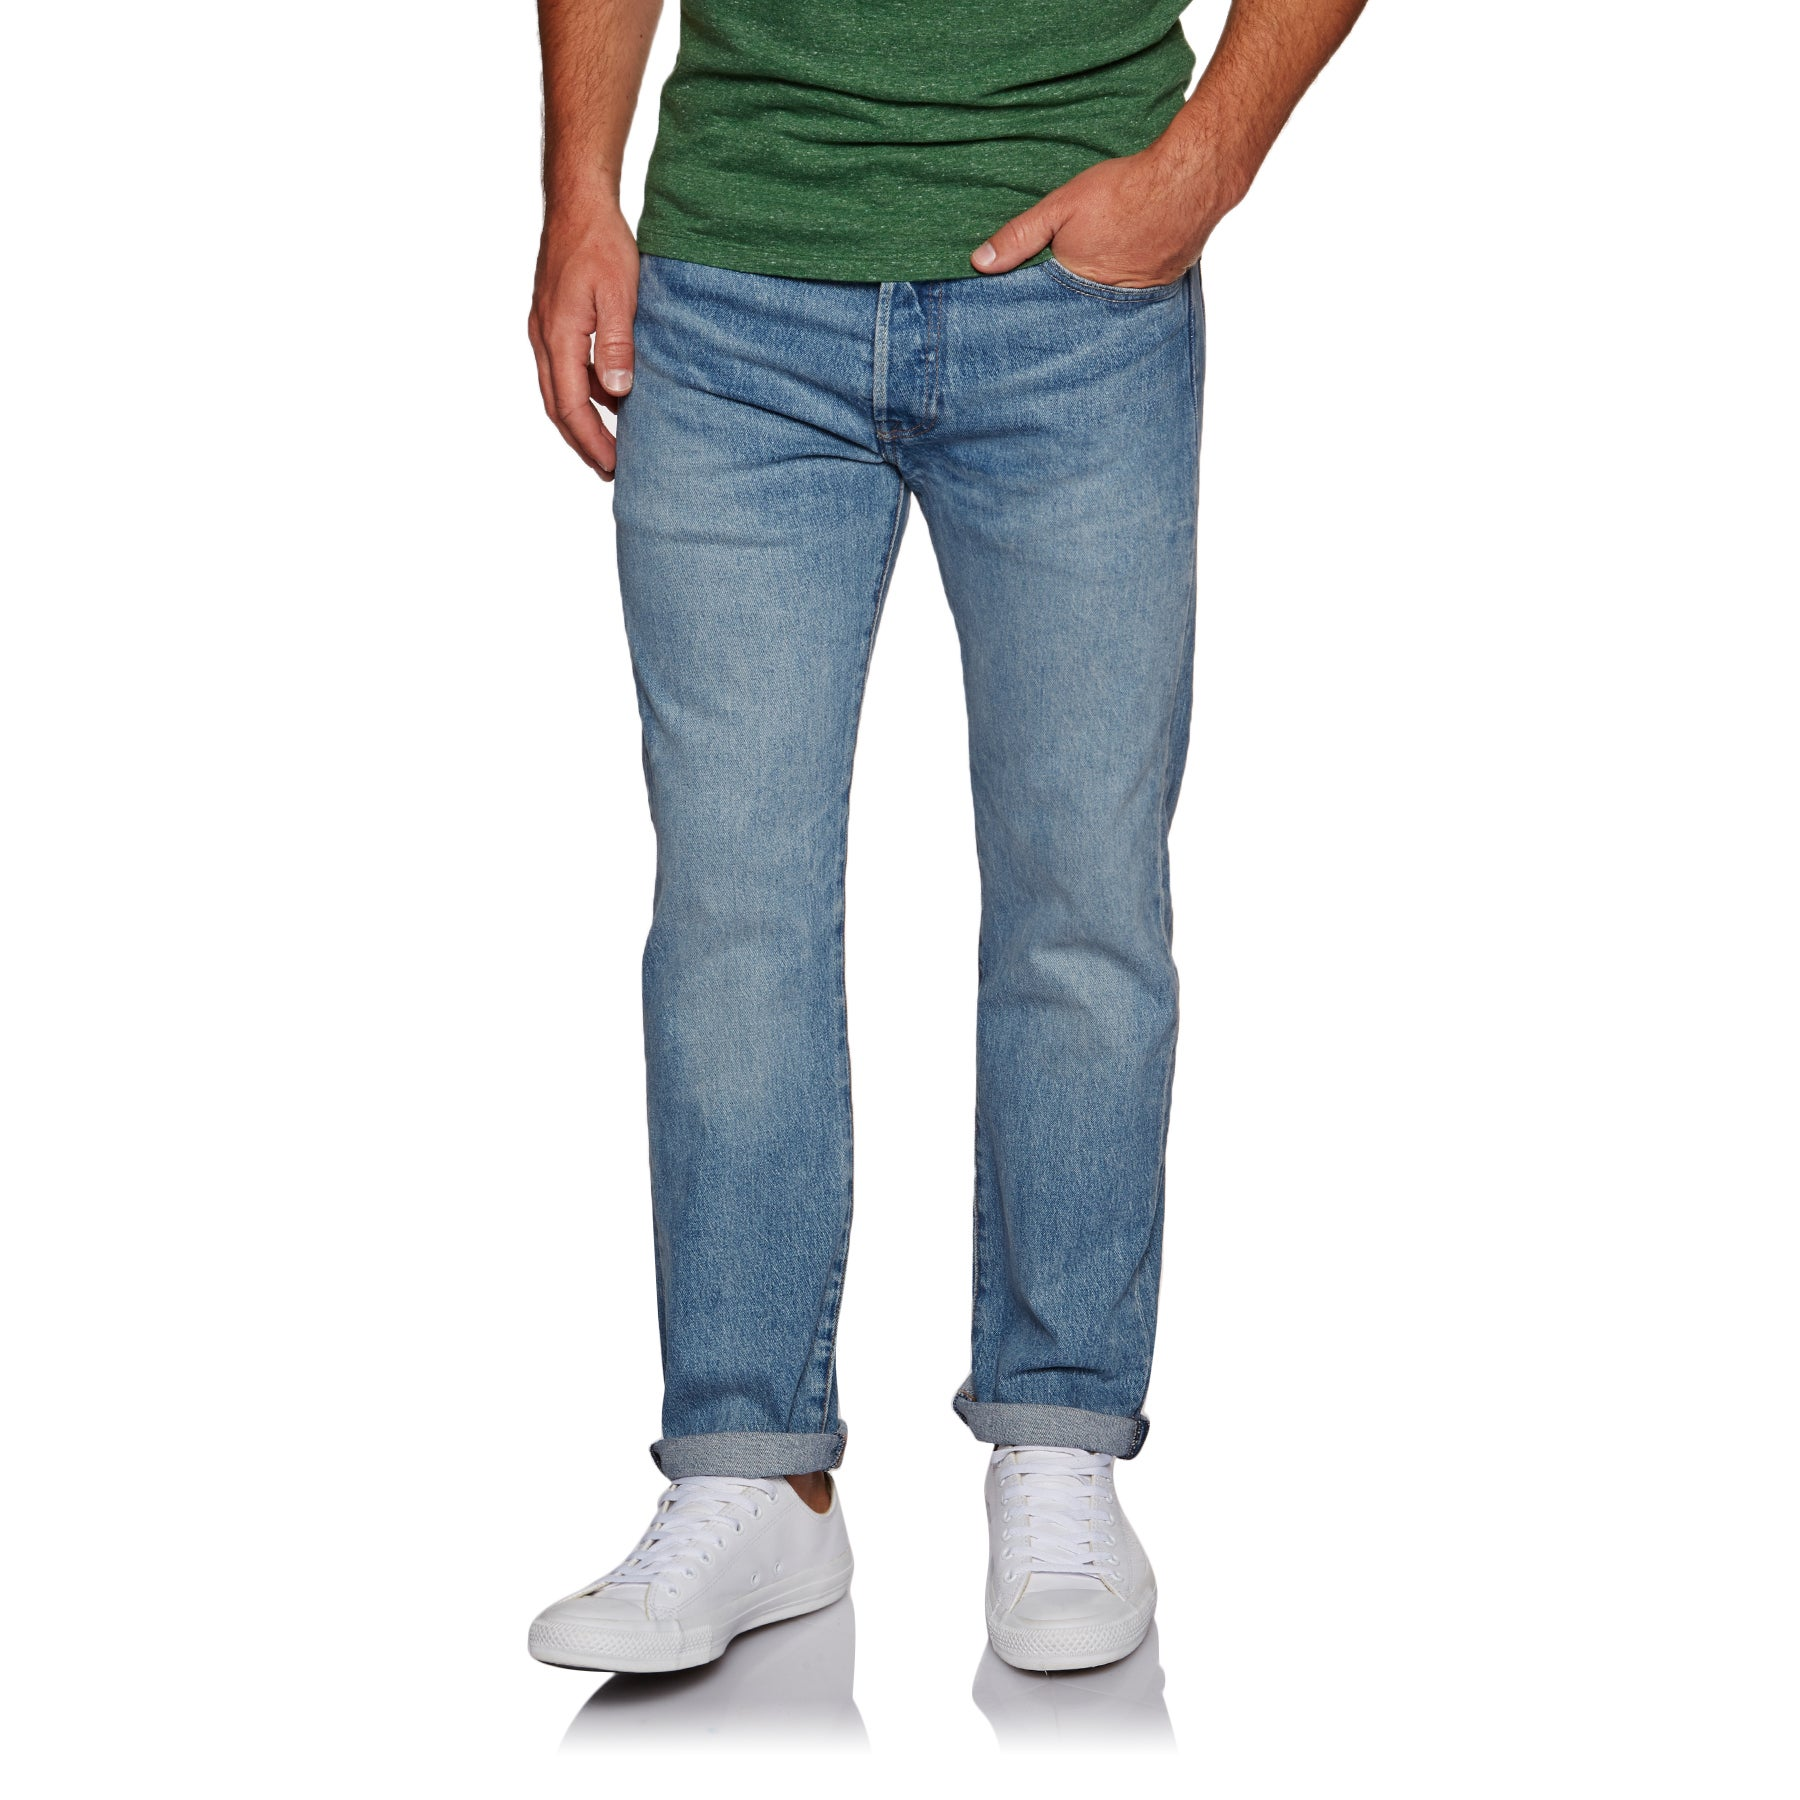 Levis 501 Jeans - Bay Water